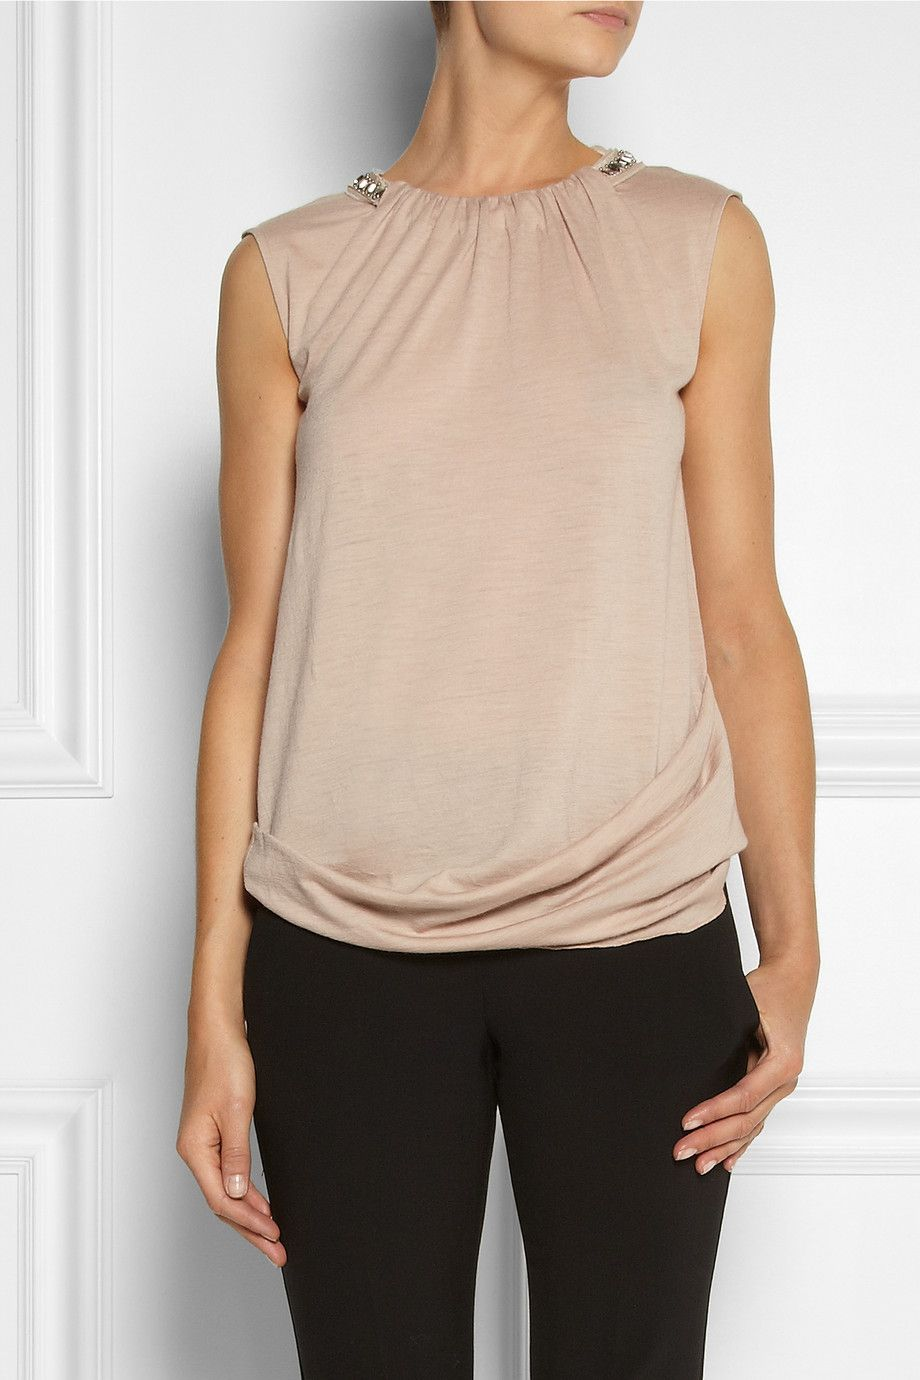 Le Meilleur Vanessa Bruno Embellished Wool Jersey Top Net A Porter Ce Mois Ci